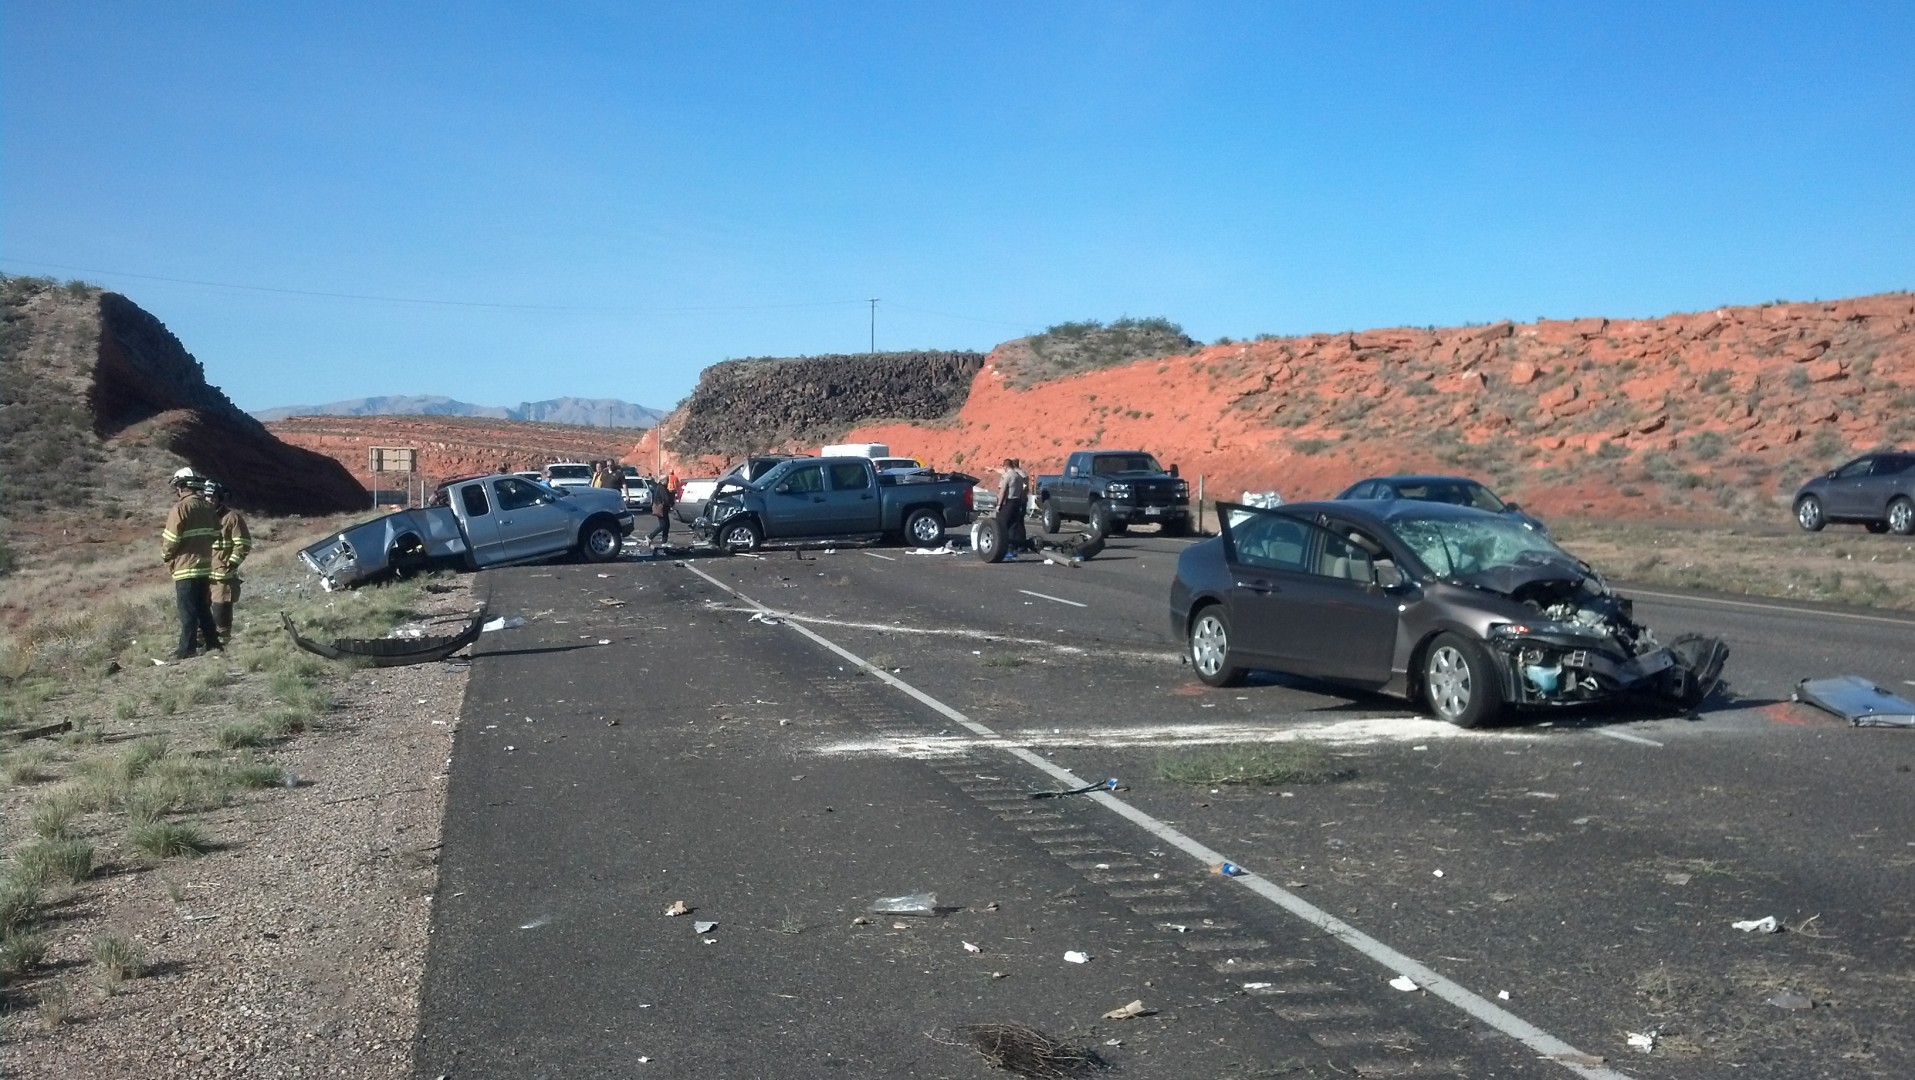 Multi-vehicle accident on I-15 NB, injuries and highway closures